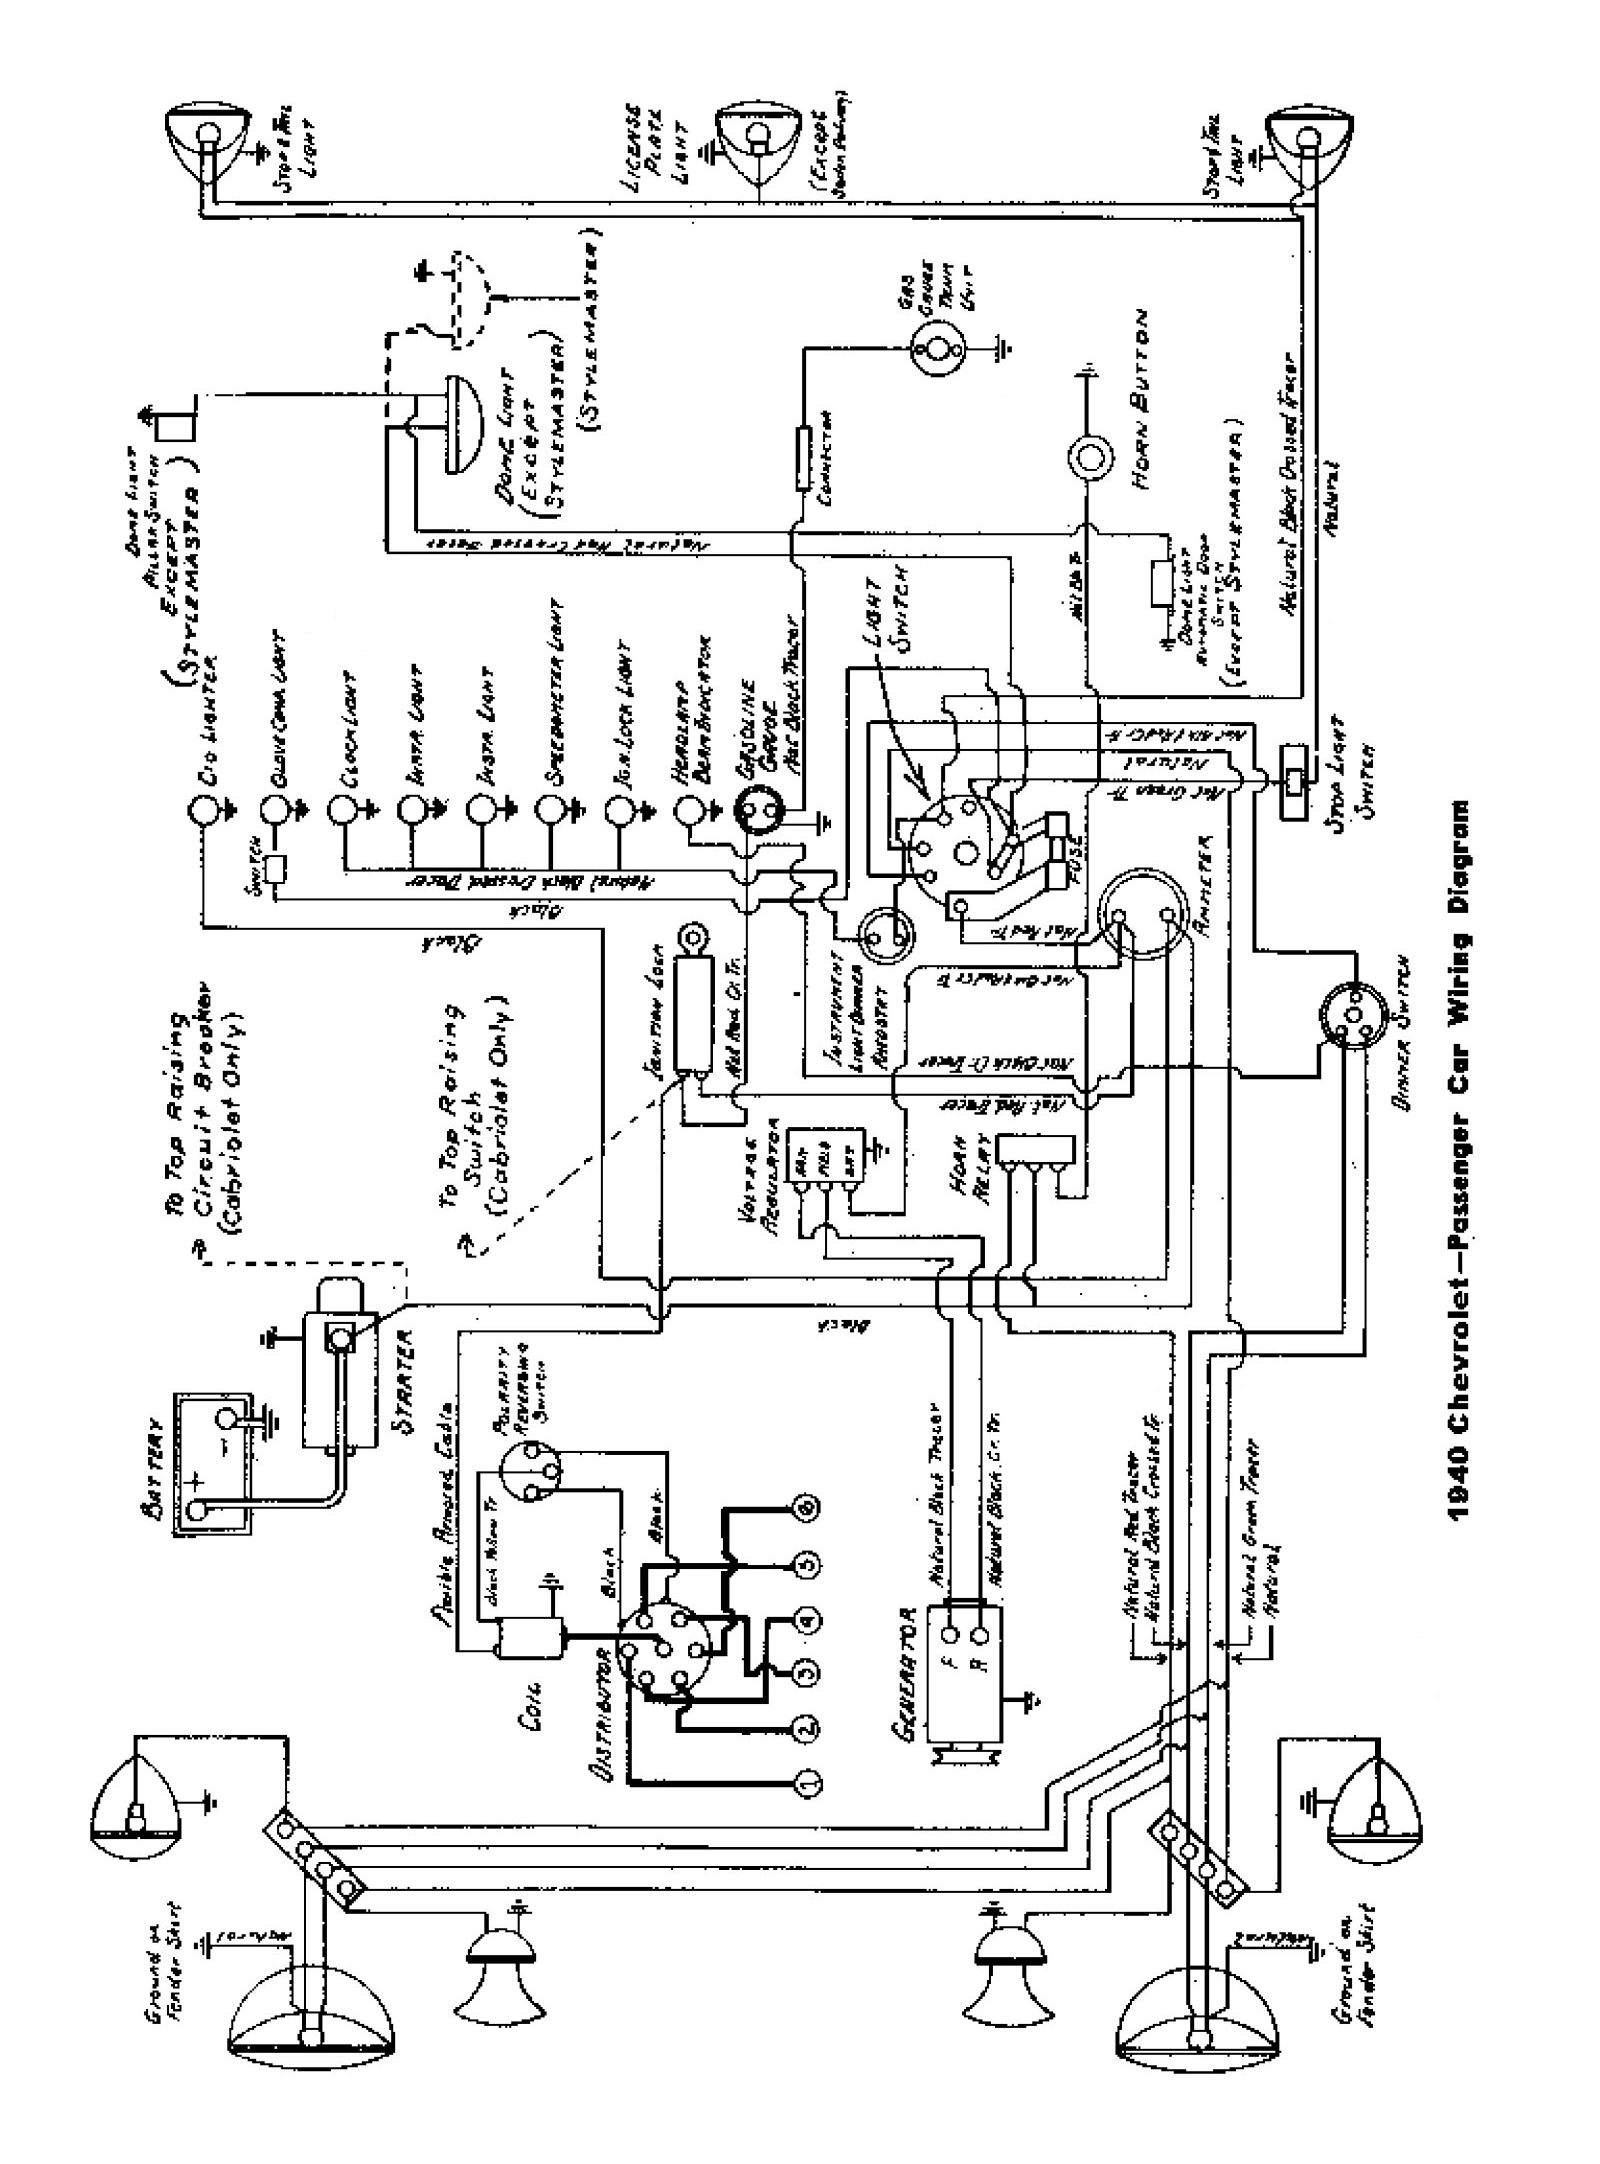 Harley Golf Cart Wiring Diagram on harley golf cart manual, harley golf cart 2 stroke, harley golf cart cylinder head, harley golf cart repair, harley-davidson electrical diagram, yamaha golf cart governor diagram, harley golf cart carb adjustment, club car golf cart diagram, harley golf cart headlight, yamaha golf cart clutch diagram, harley golf cart tires, harley golf cart clutch diagram, golf cart electrical system diagram, harley golf cart frame, harley wiring diagrams pdf, golf cart carburetor diagram, harley golf cart exhaust, yamaha golf cart parts diagram, 12 volt parallel battery wiring diagram, harley golf cart engine,